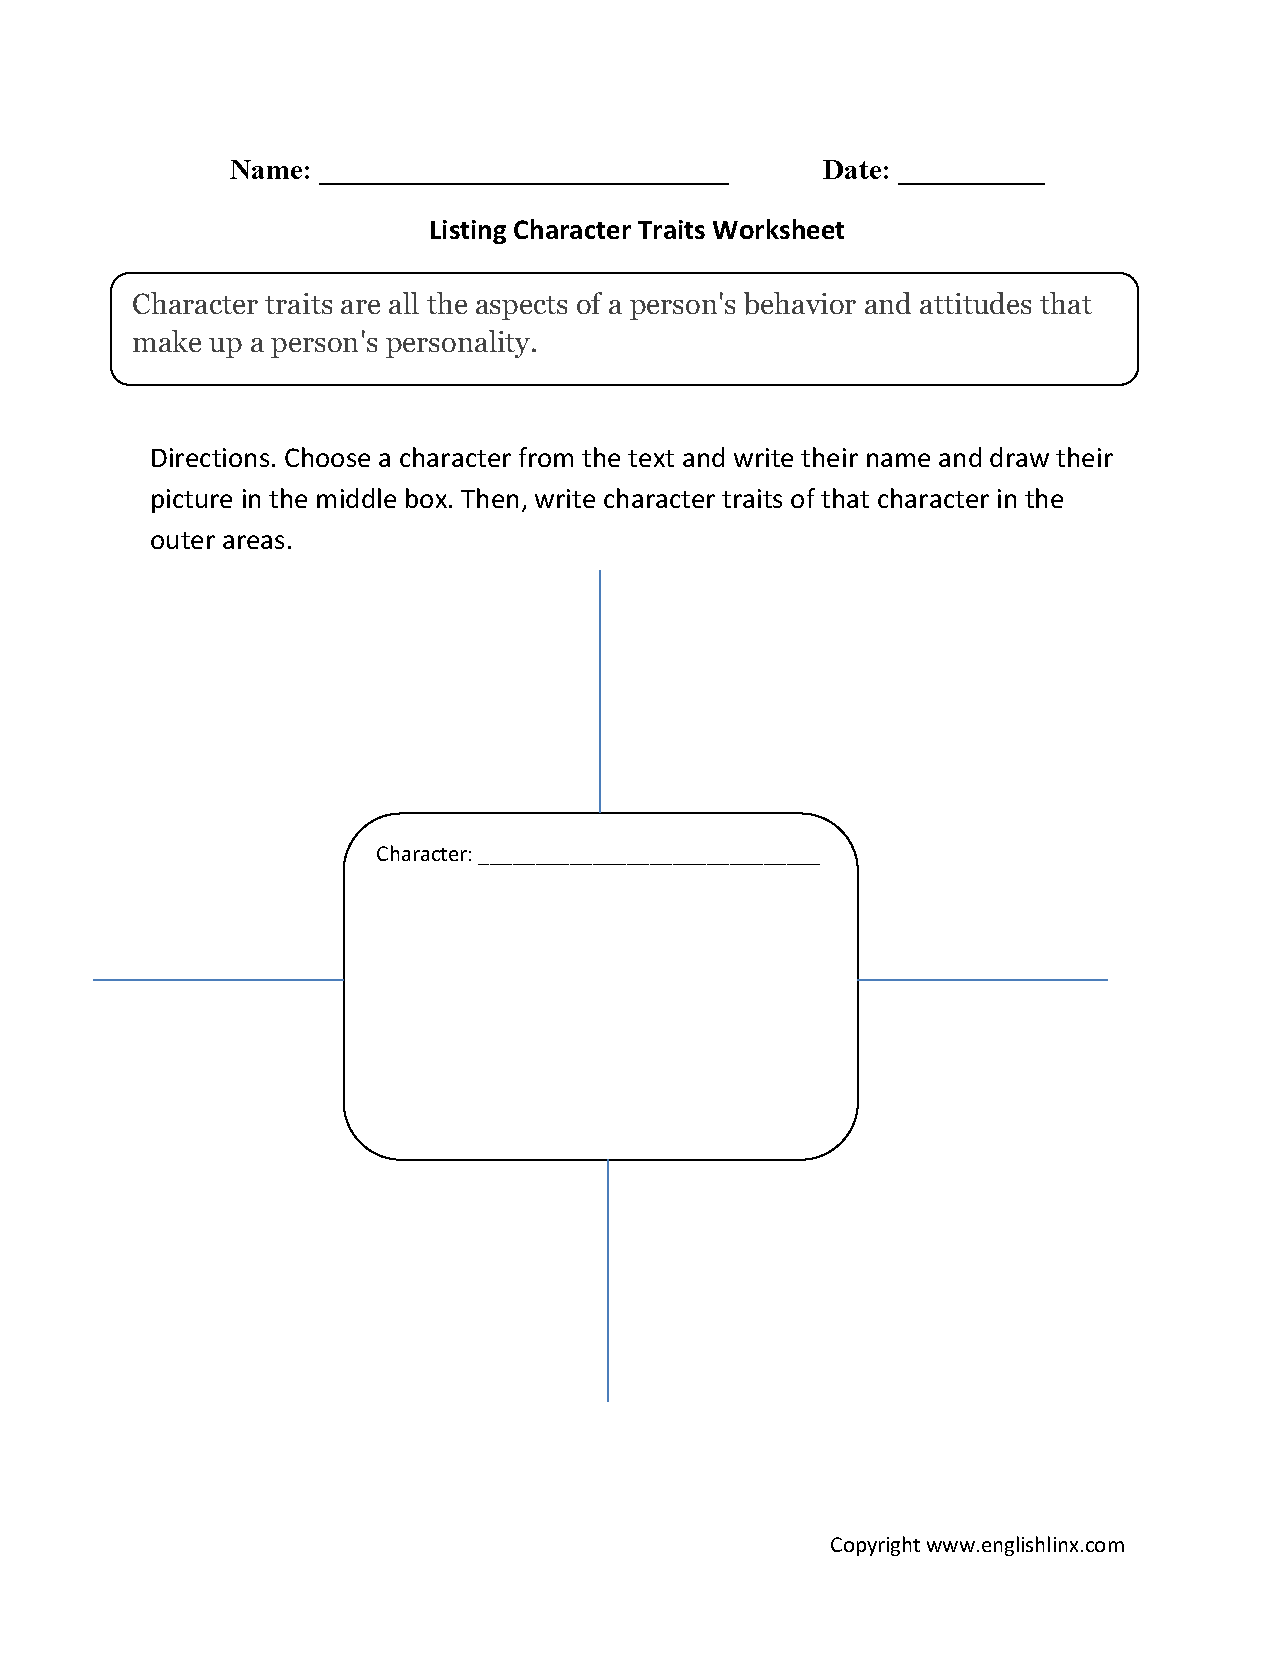 worksheet Character Trait Worksheets reading worksheets character traits listing worksheets